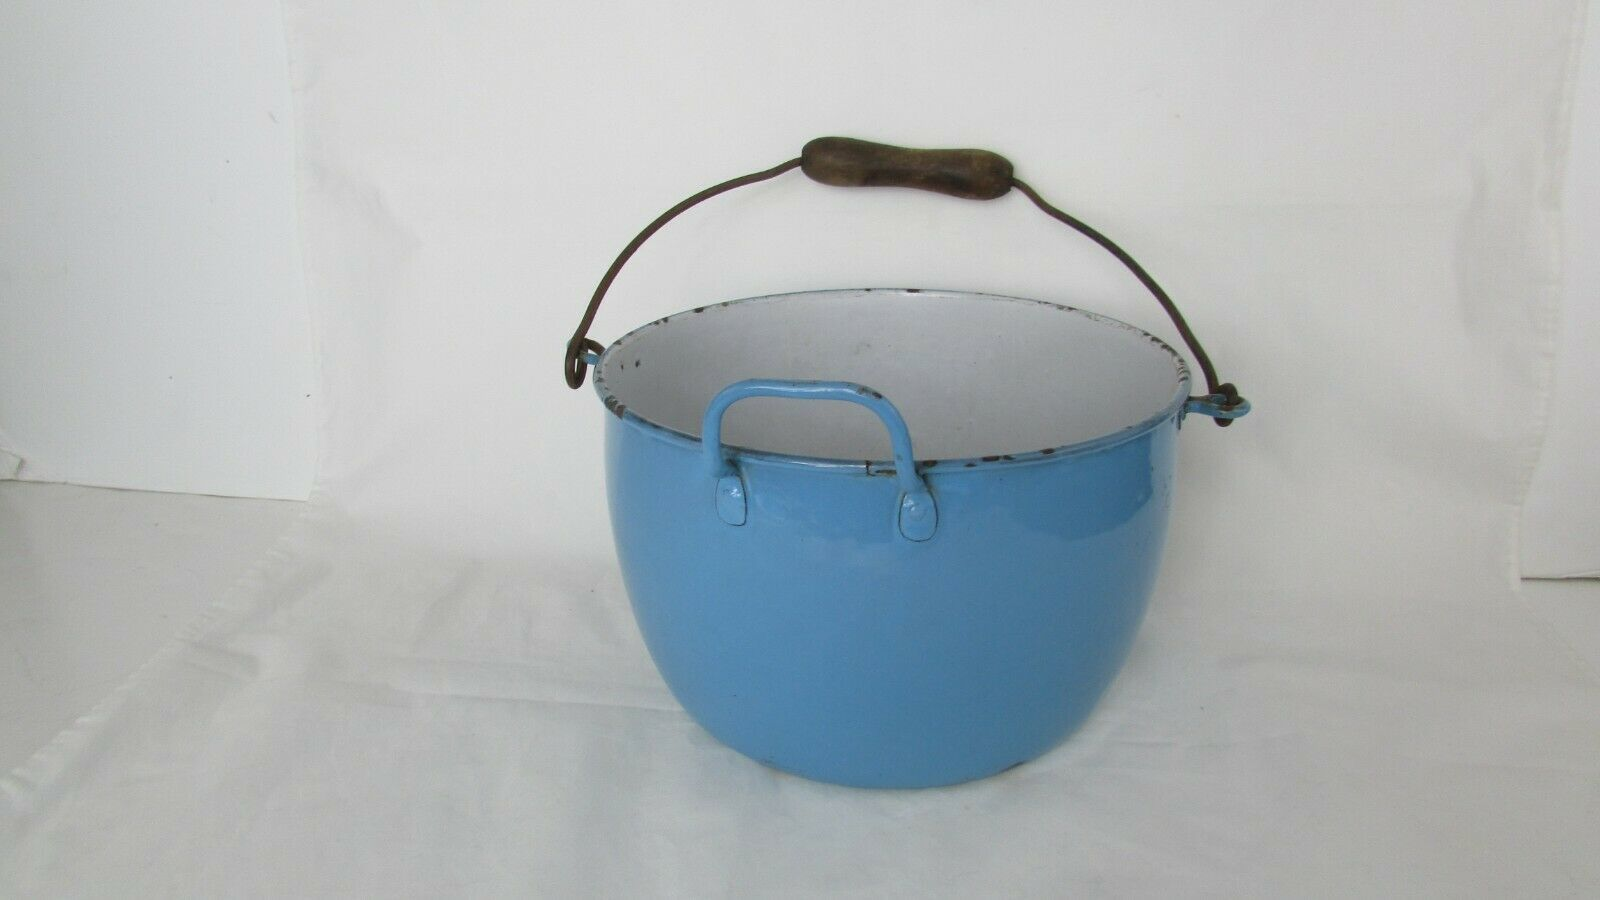 Vintage Enamel  Pail Bucket Blue and White Enamelware With Wooden Handle image 2